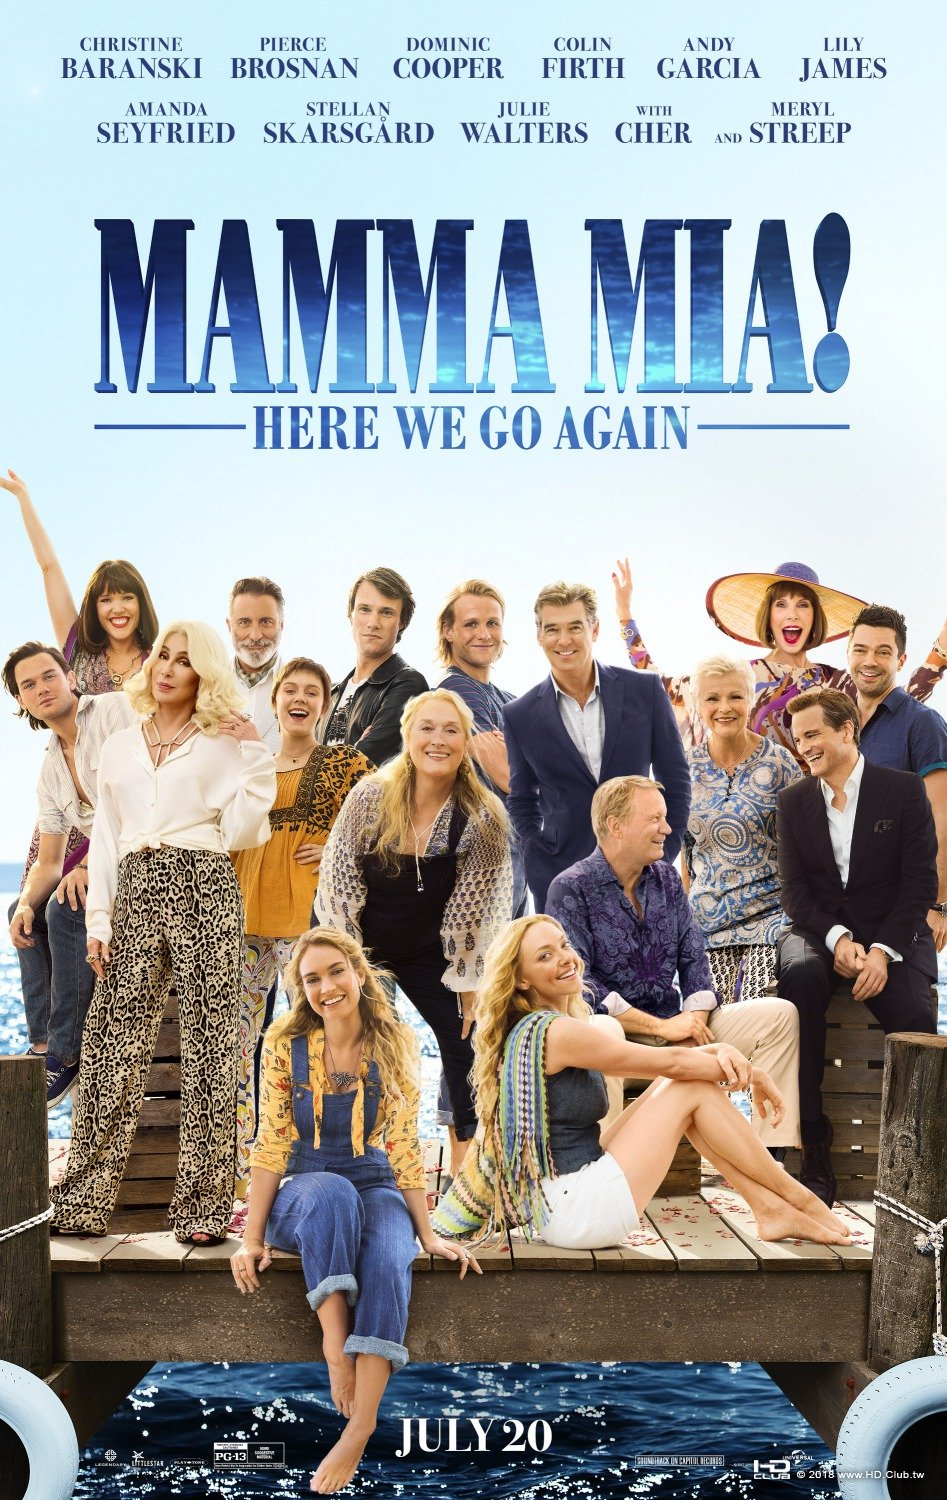 mamma_mia_here_we_go_again_ver3_xlg.jpg